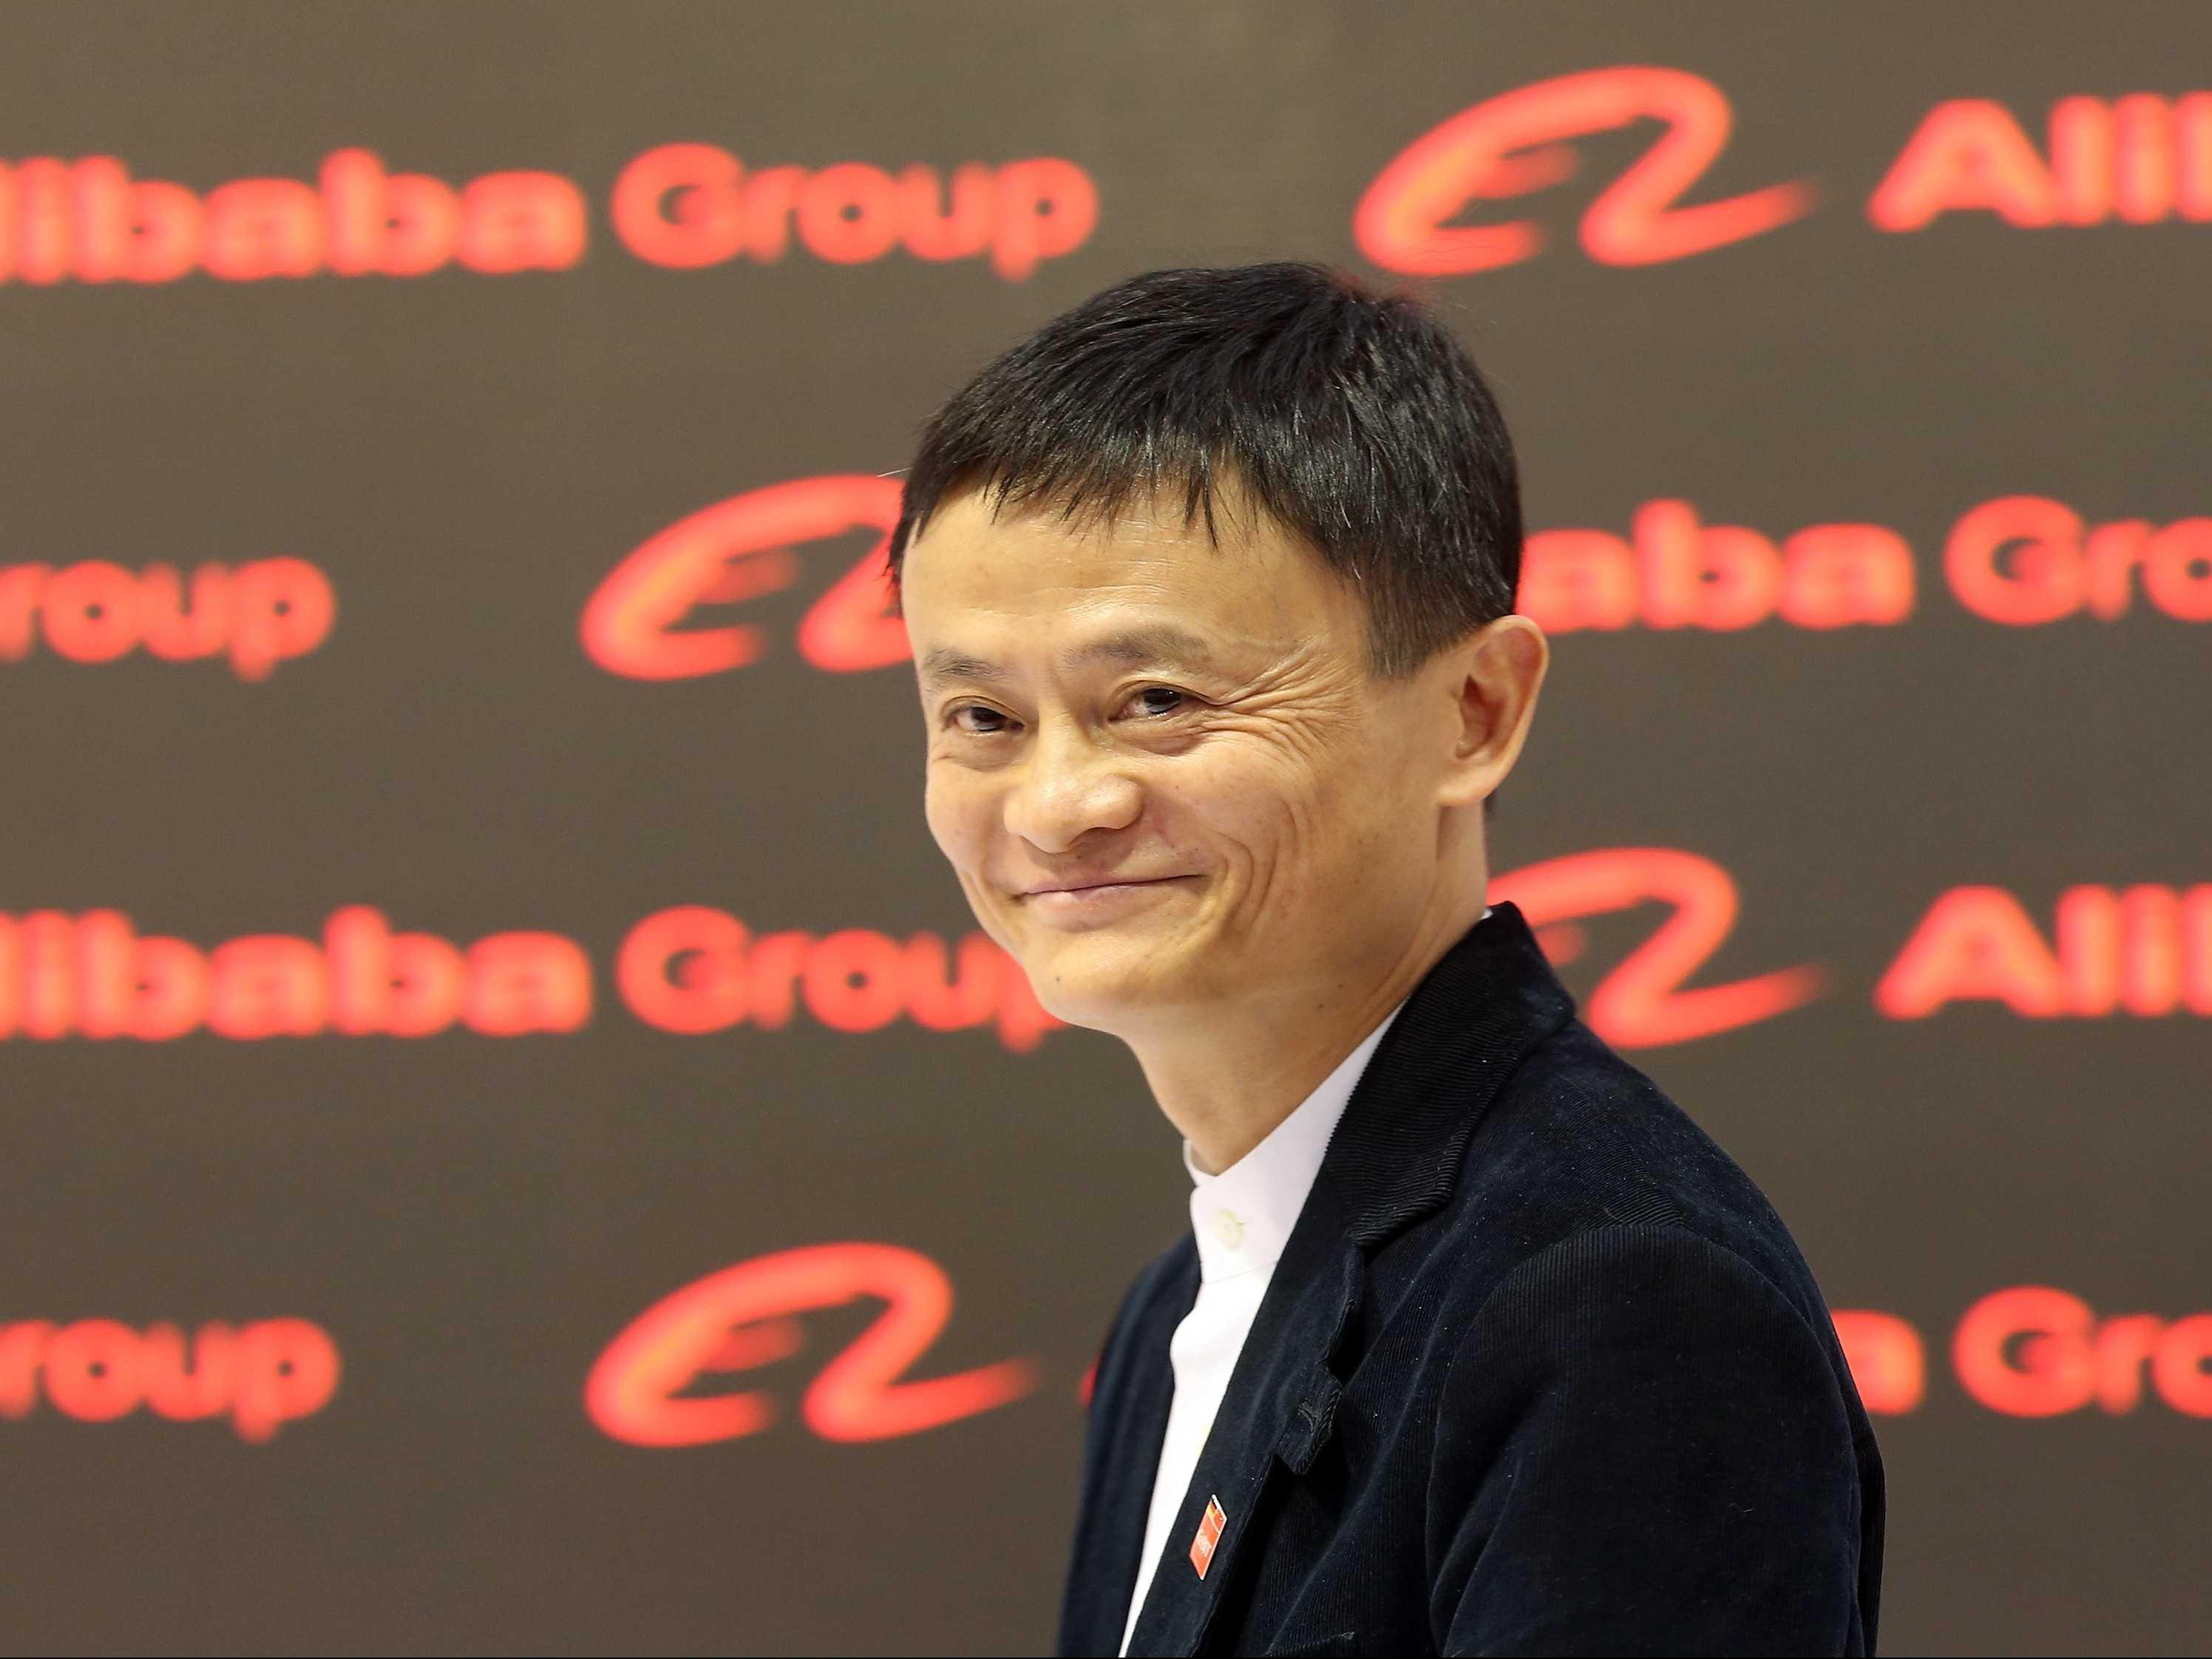 JACK MA: China's economy is slowing, and that's a good thing